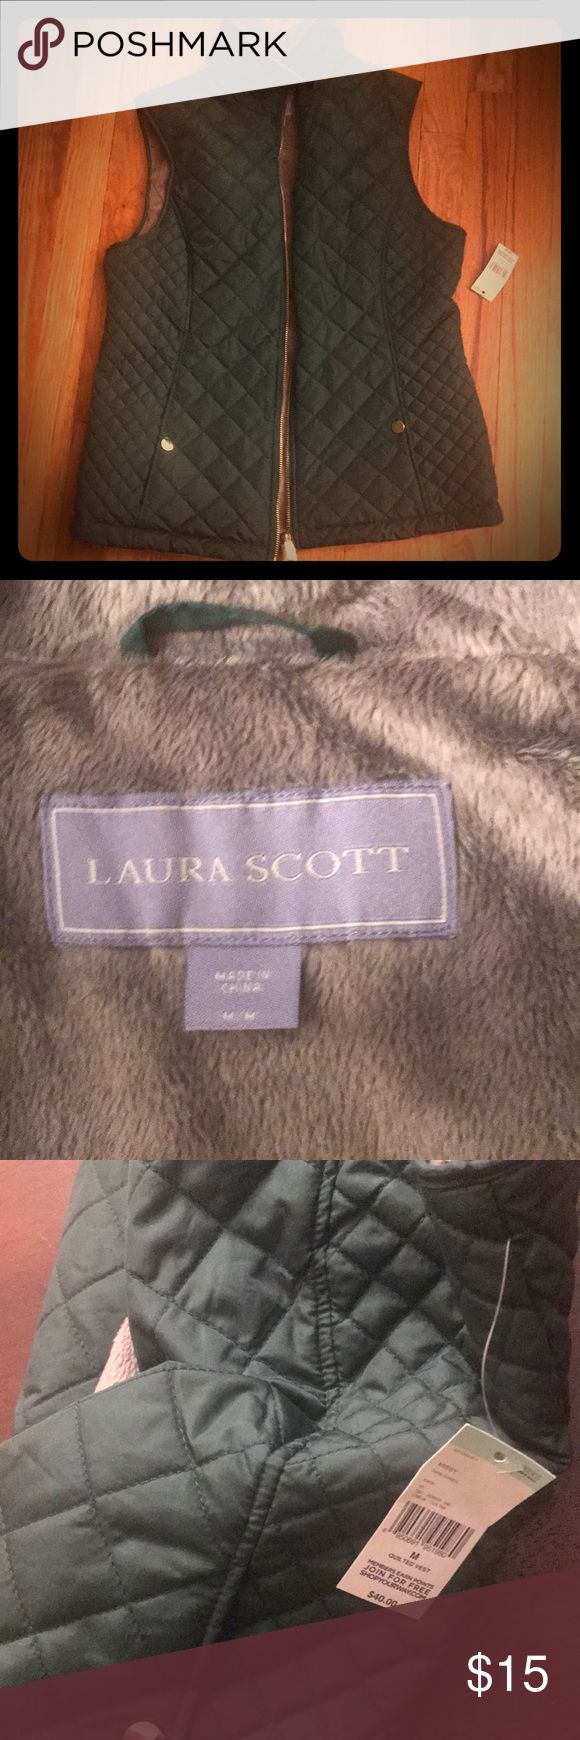 Laura Scott Quilted Green Vest New with tags!  Quilted forest green vest with soft grey inside.  Gold zipper.  Both cute and warm! Laura Scott Jackets & Coats Vests